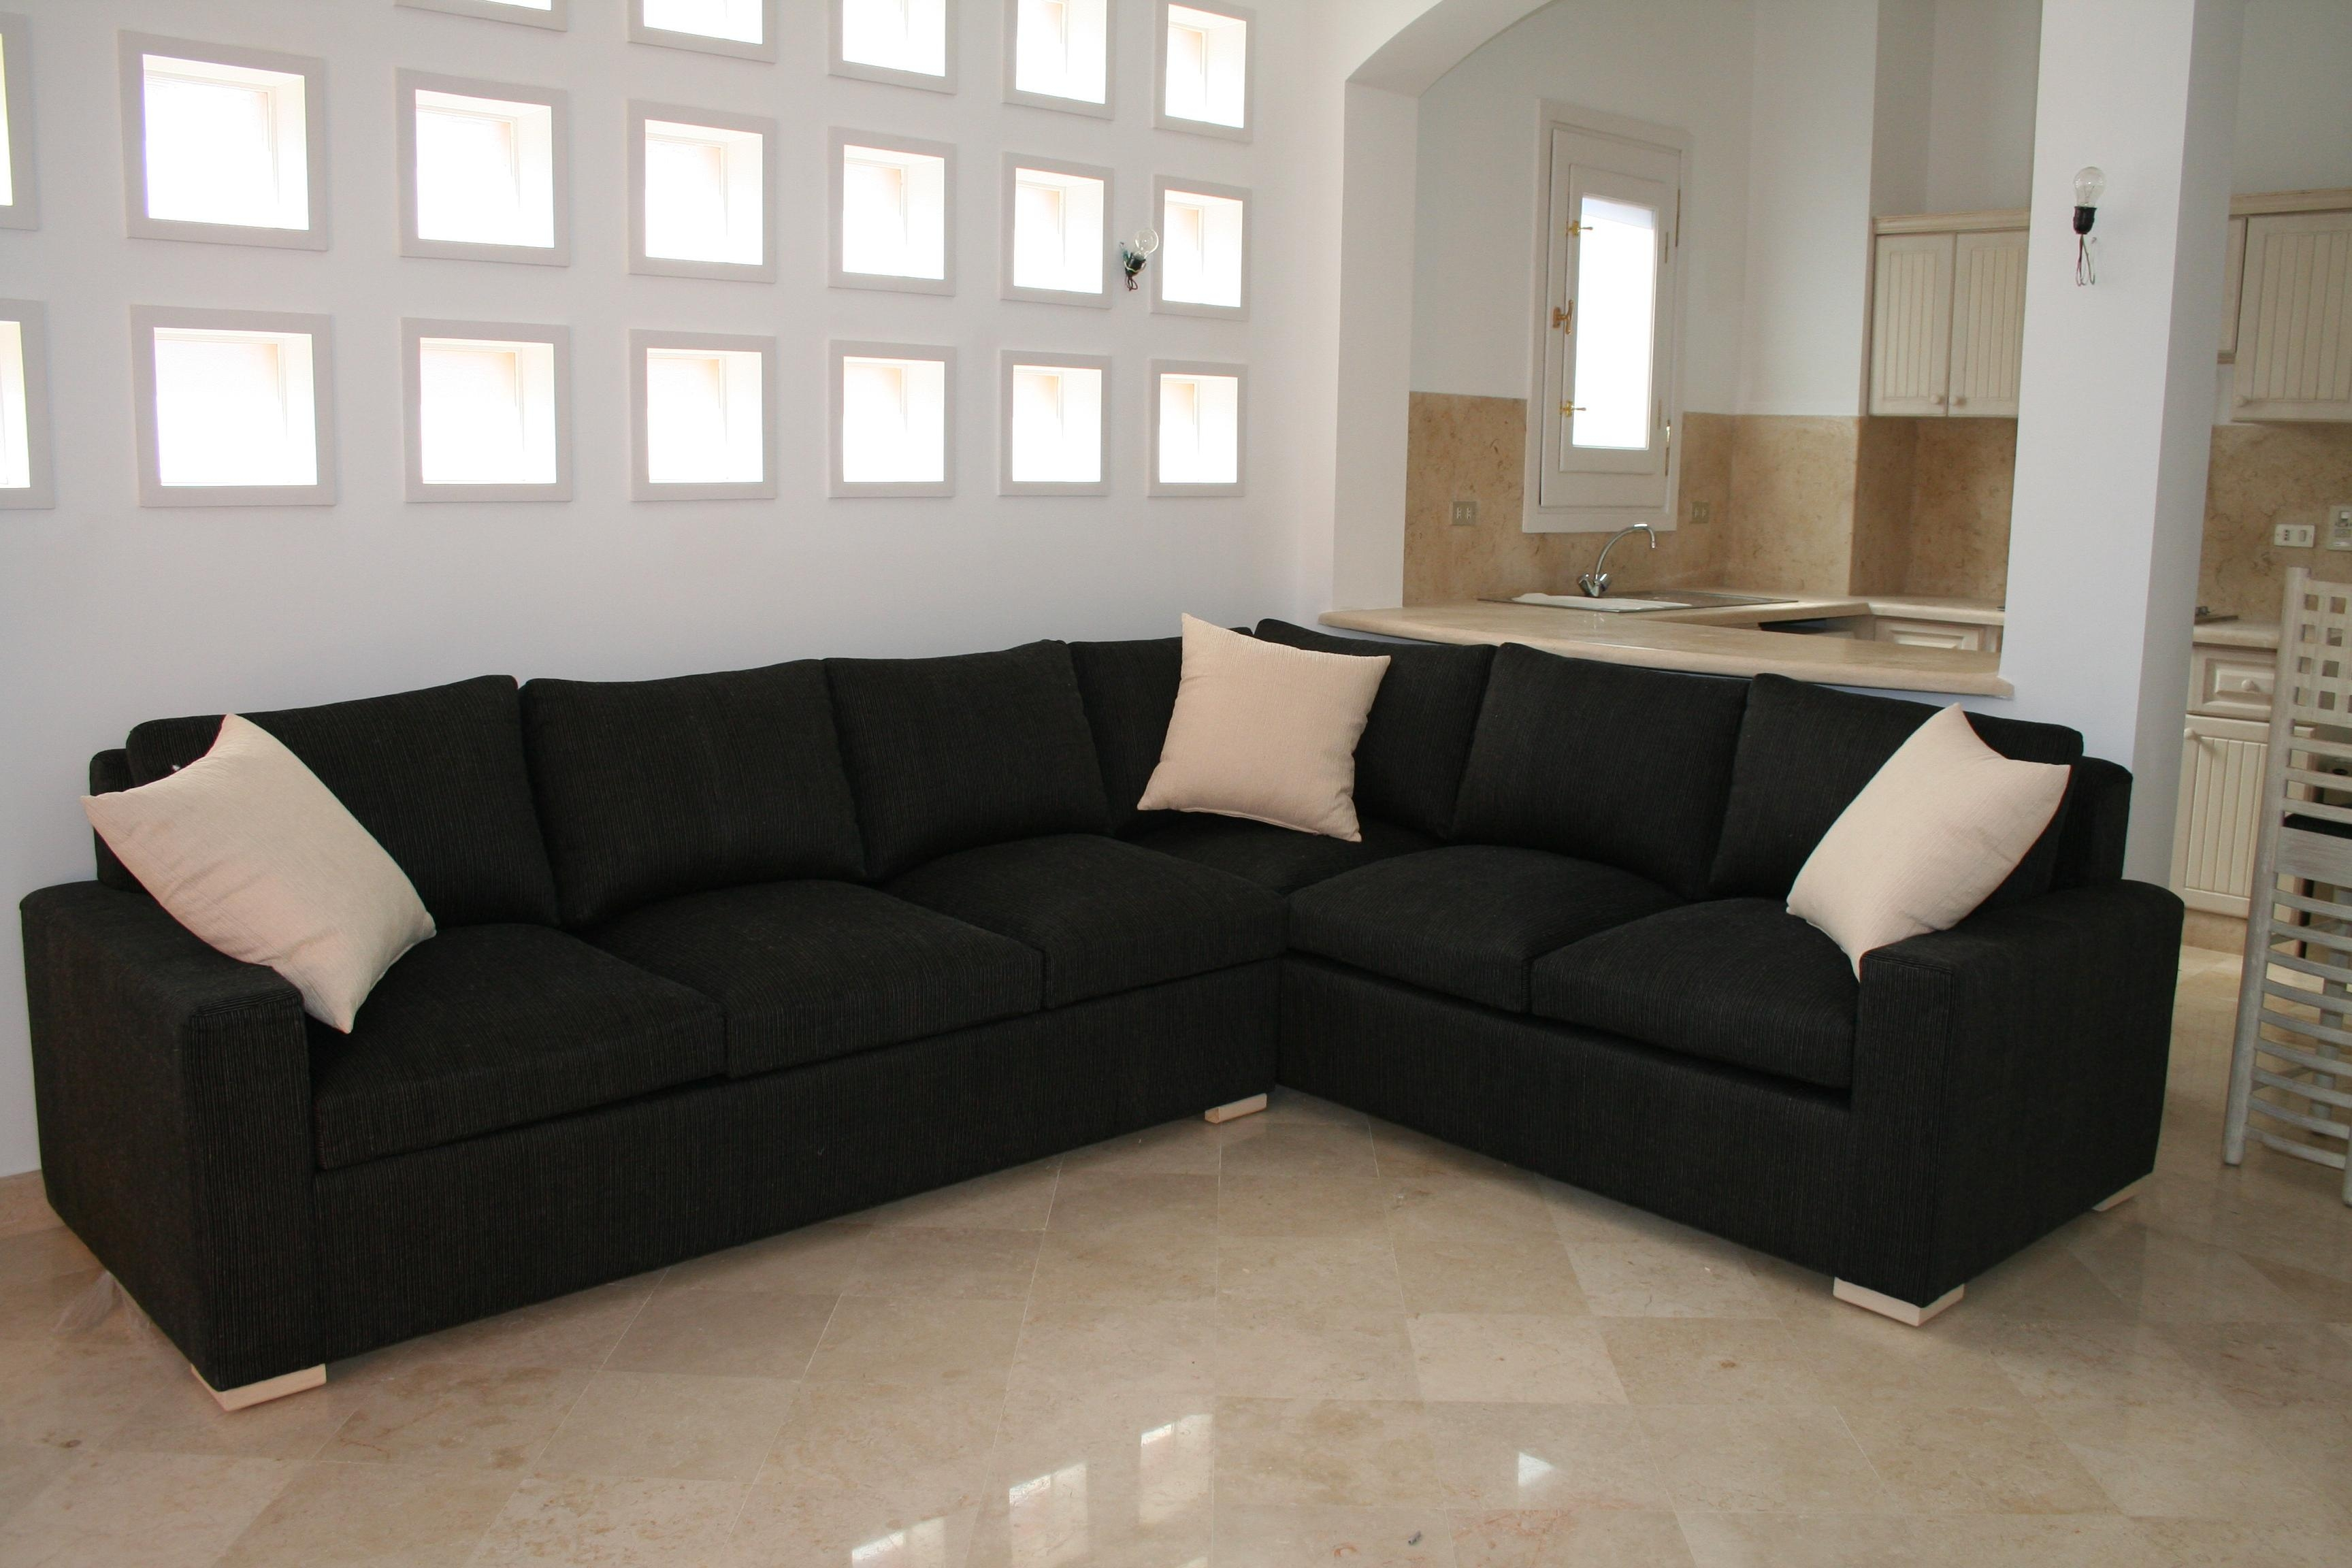 Furniture: Fabulous L Shaped Sofa For Modern Living Room Intended For Leather L Shaped Sectional Sofas (Image 7 of 20)